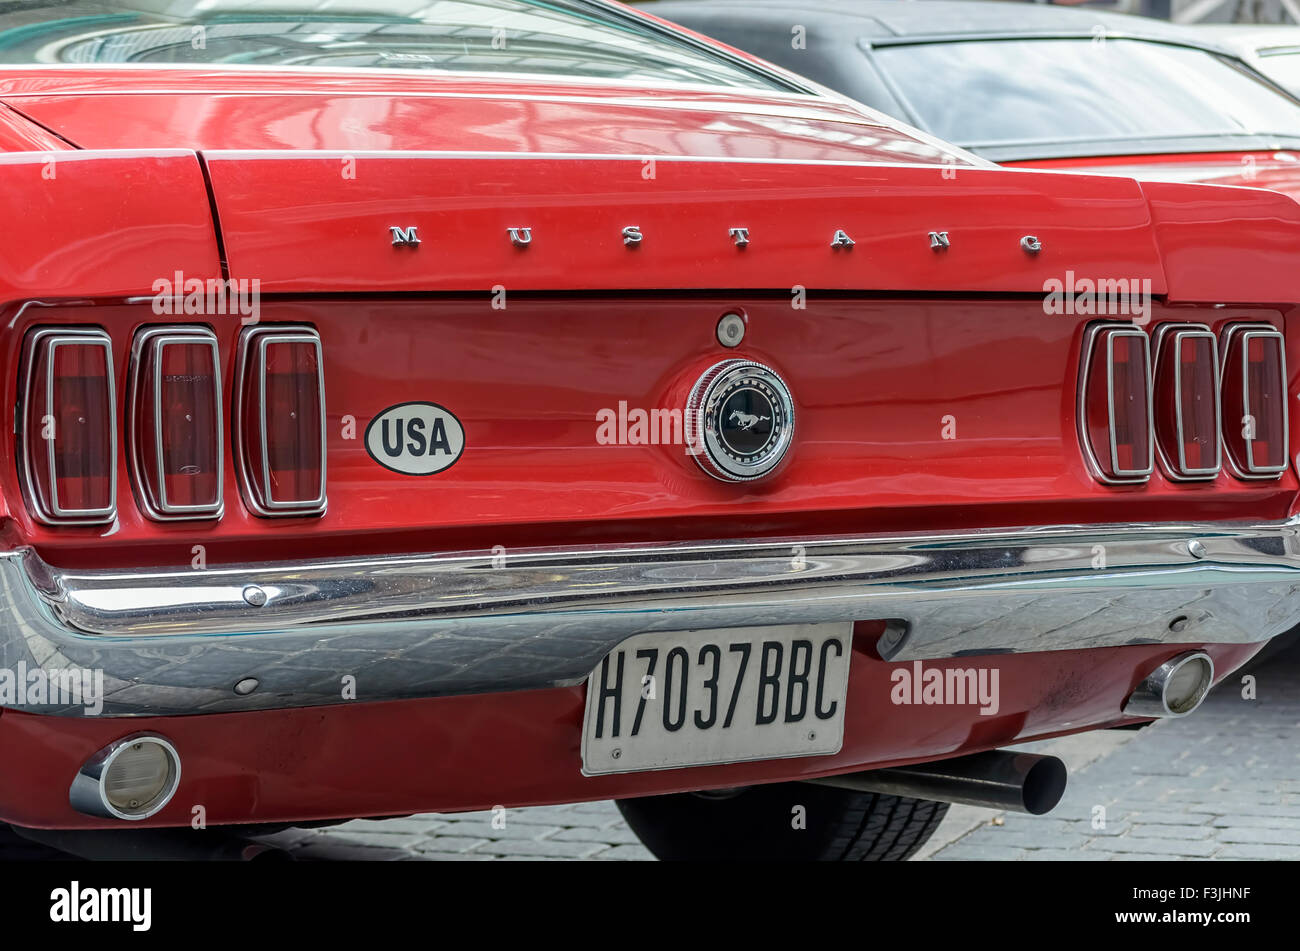 Meeting of classic american cars. Rear view of red car Ford Mustang, of 1967. Stock Photo